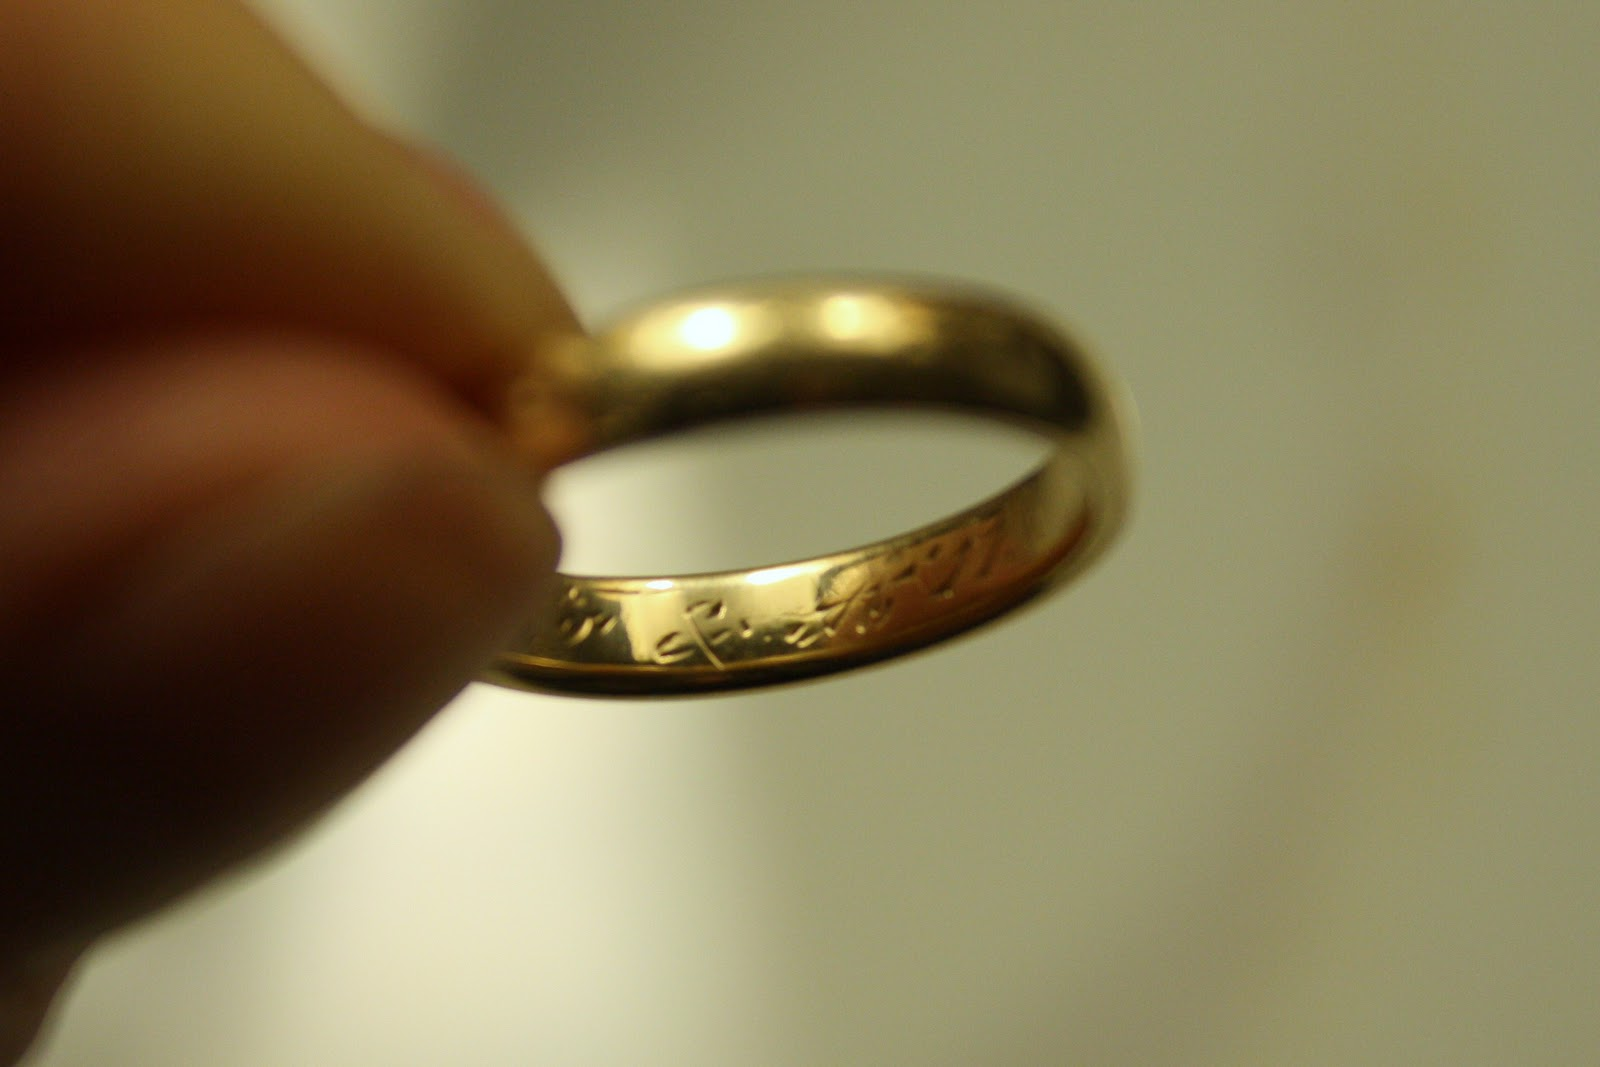 Fieldwork Travel and Food A 100 YearOld Wedding Ring